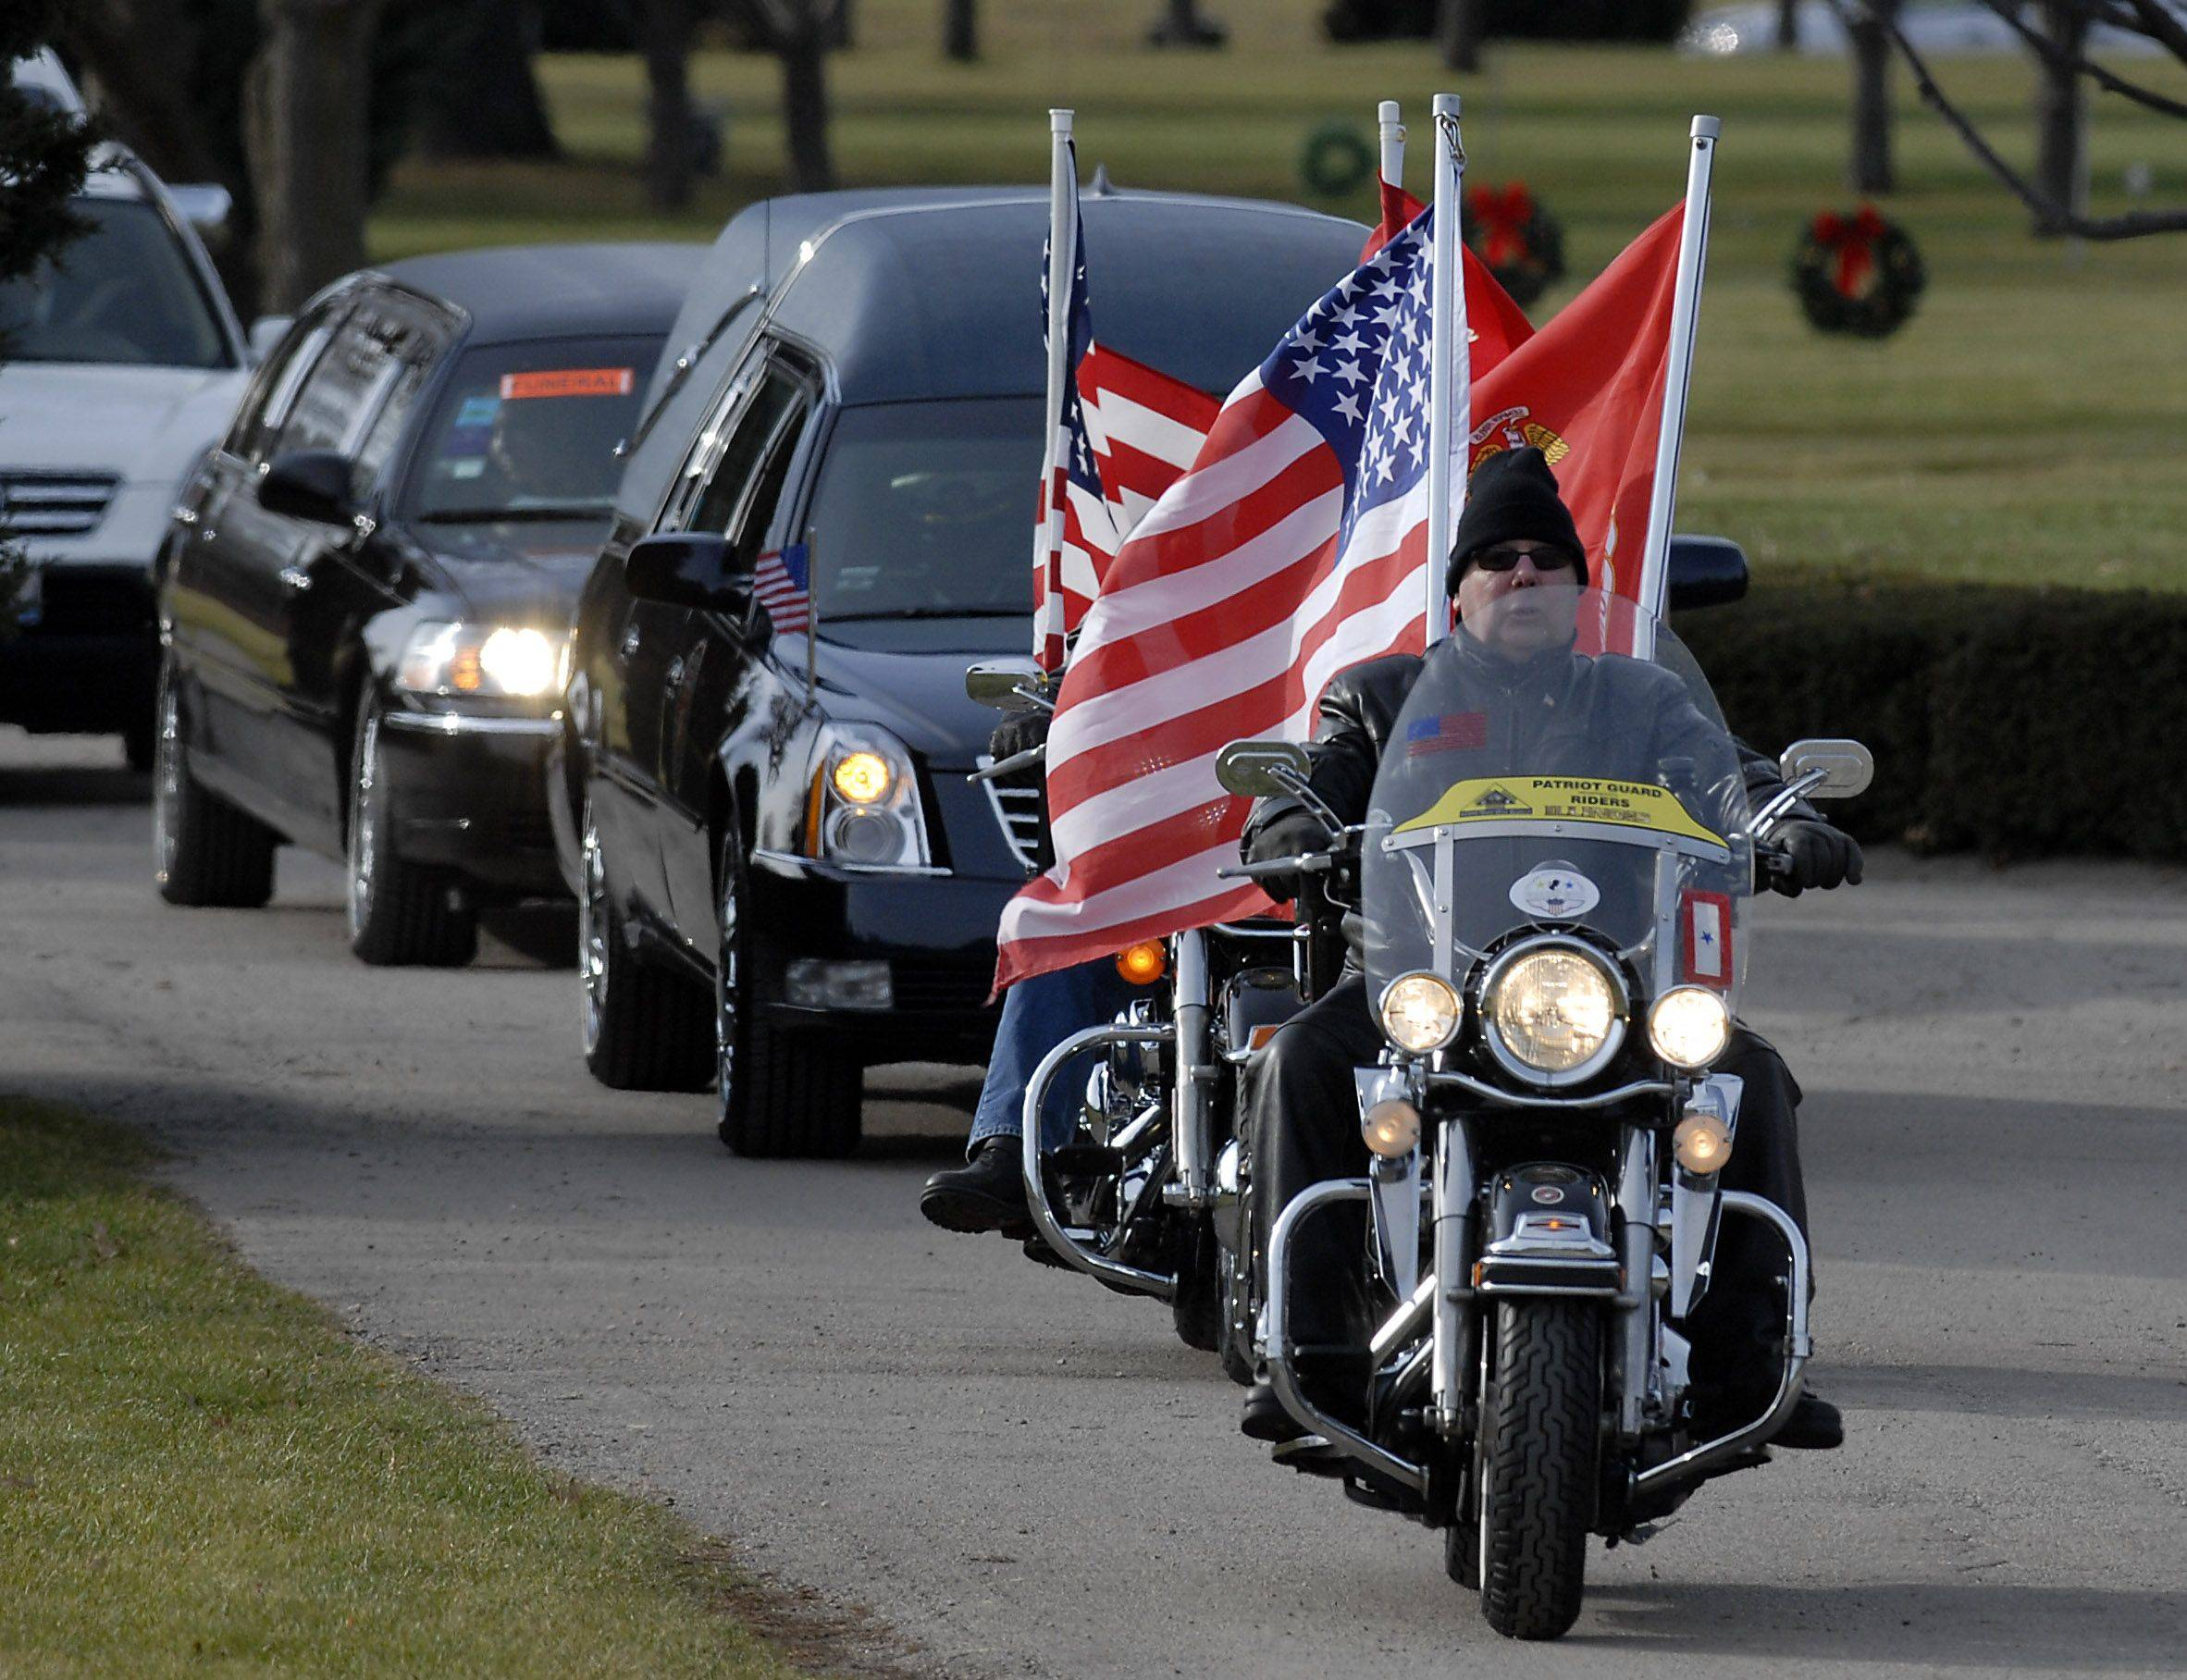 The Patriot Guard leads the hearse and family into Memory Gardens in Arlington Heights for the funeral of Lance Corporal James Stack.